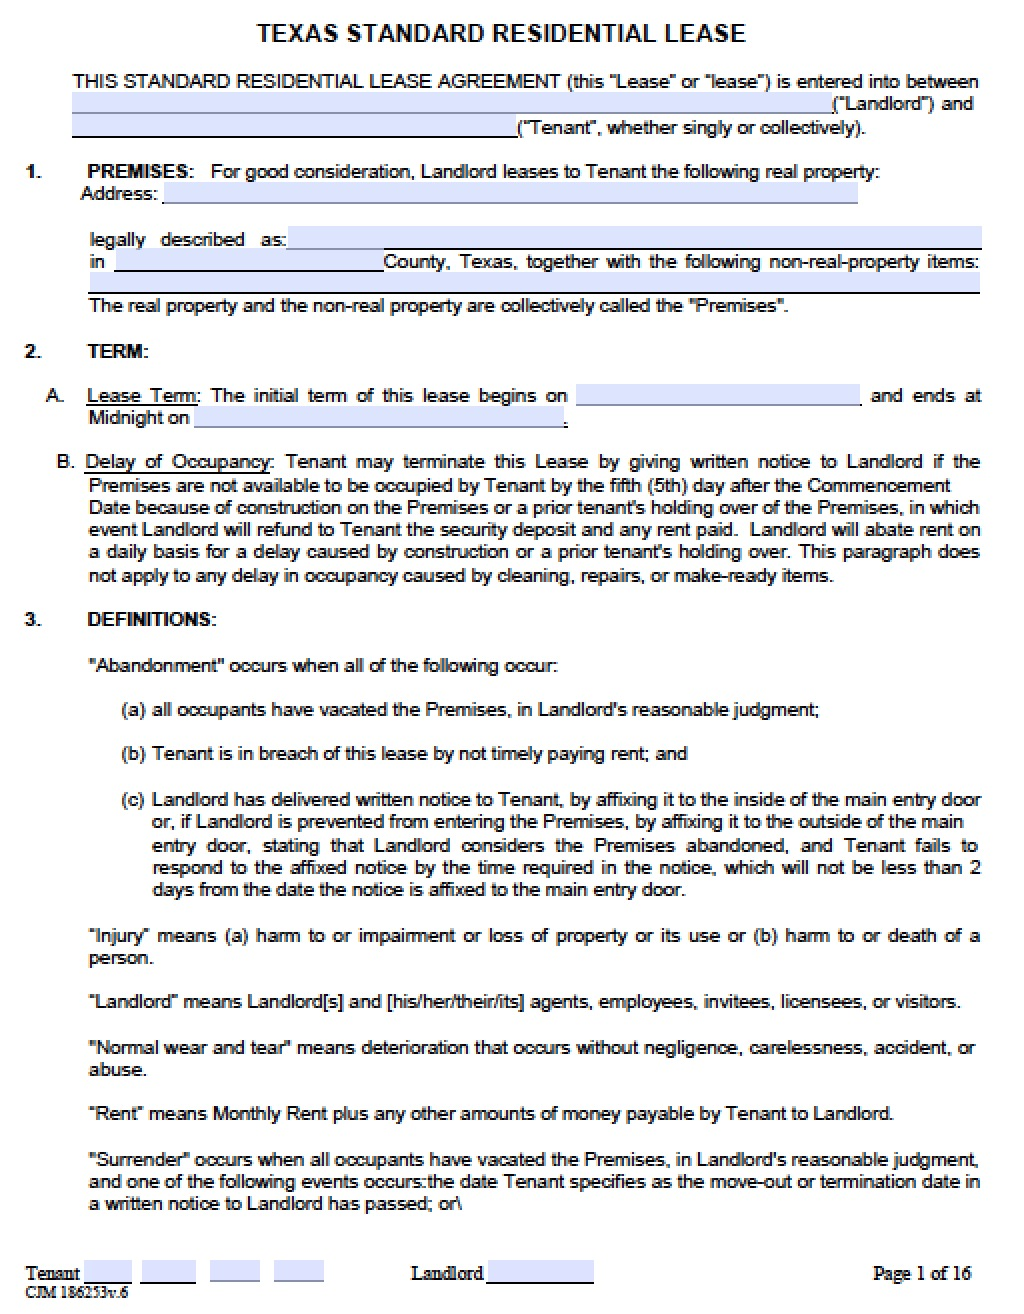 texas-standard-residential-lease-agreement  Page Employment Application Forms Editable on free job, day care, bhutan post,